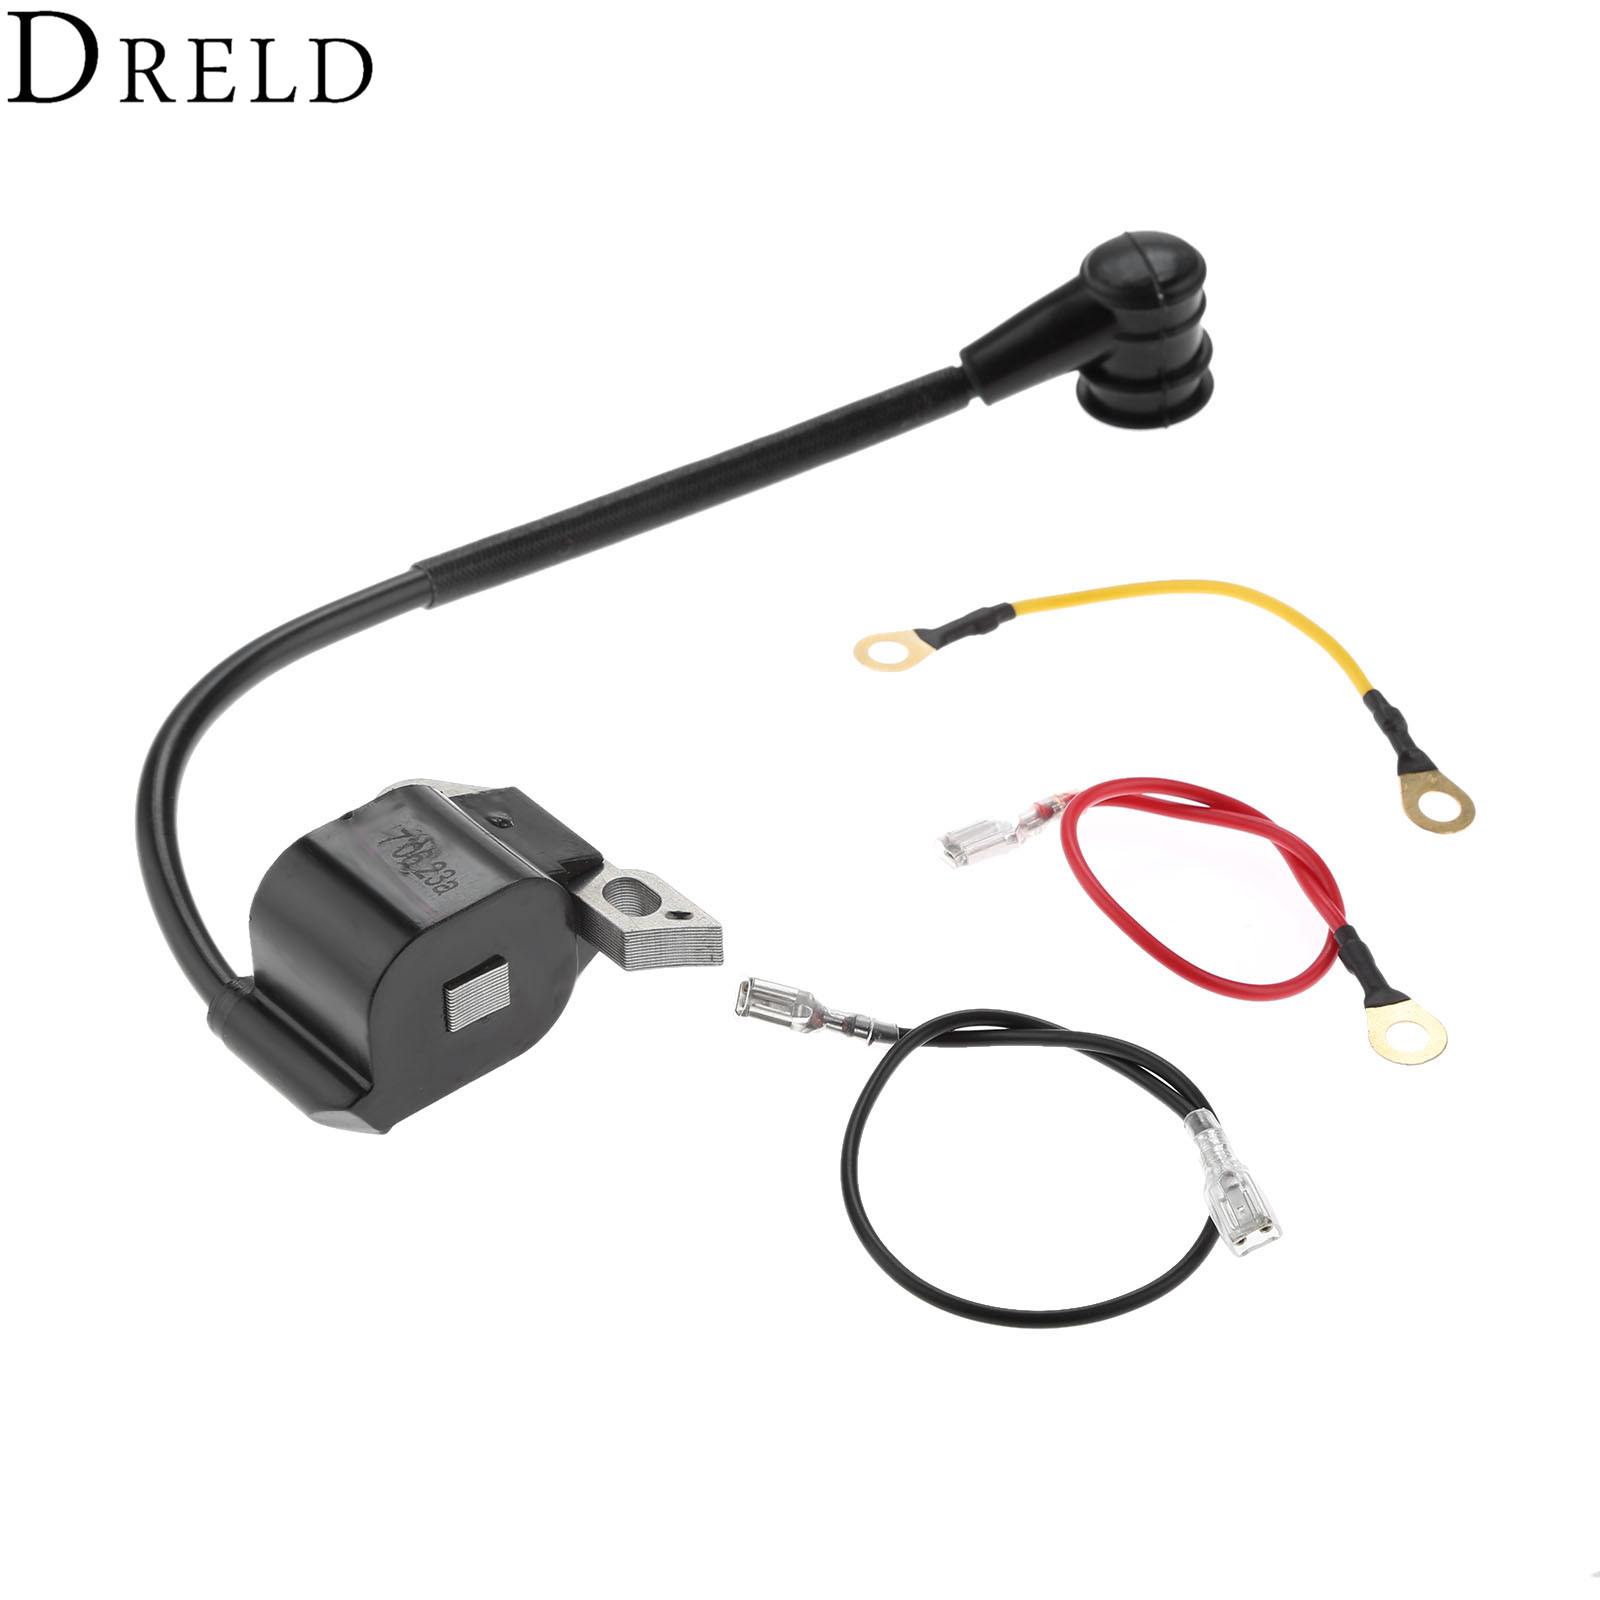 DRELD Ignition Coil With 3pcs Wire For STIHL 020 021 023 025 020T MS210 MS230 MS250 Chainsaw Parts #0000 400 1302 / 000 400 1306